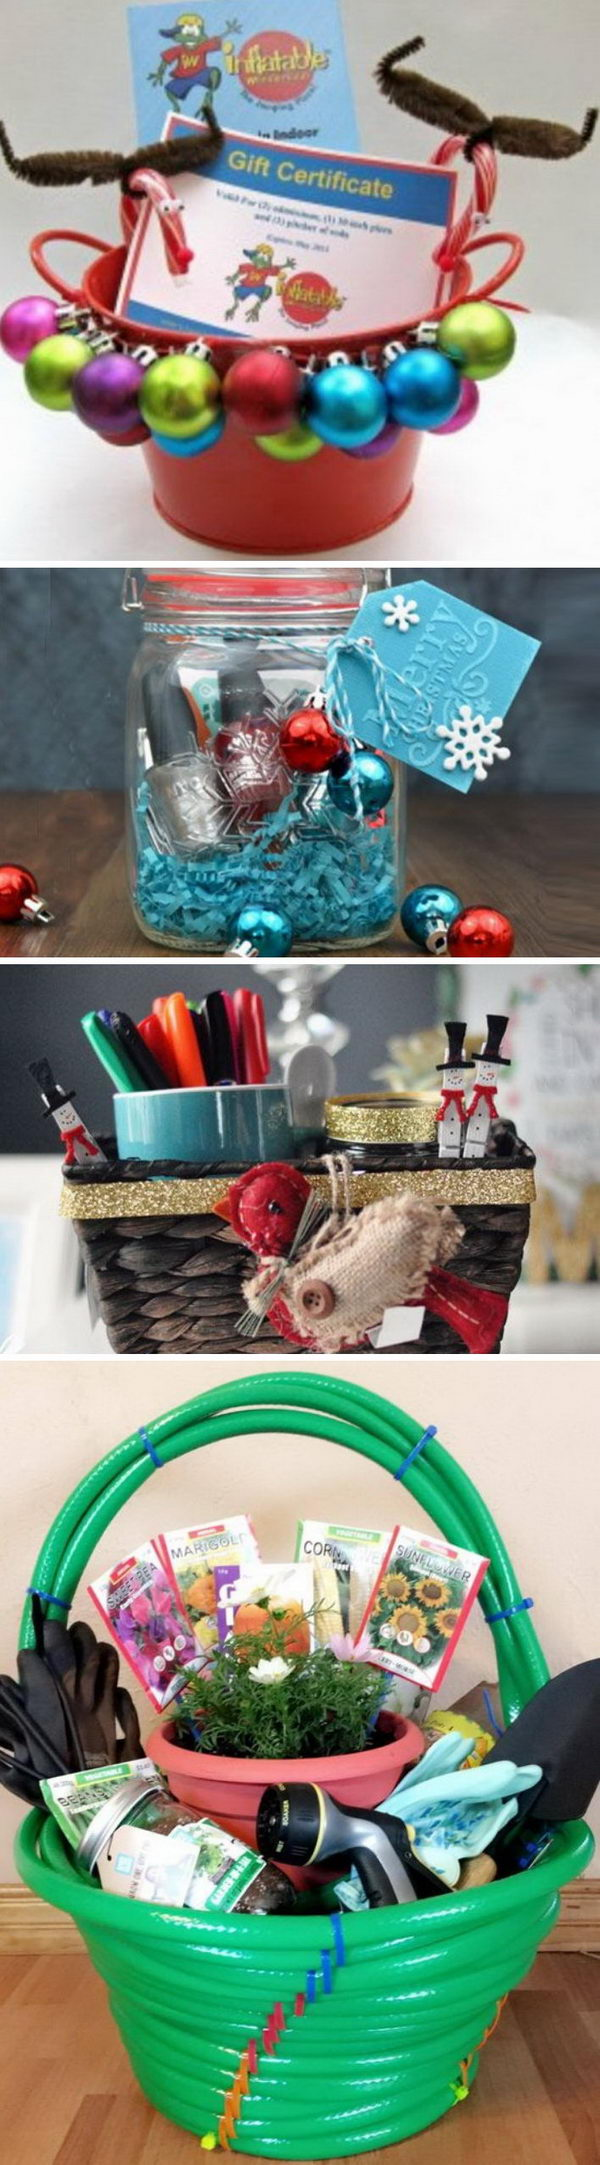 25 DIY Christmas Gift Basket Ideas 2017